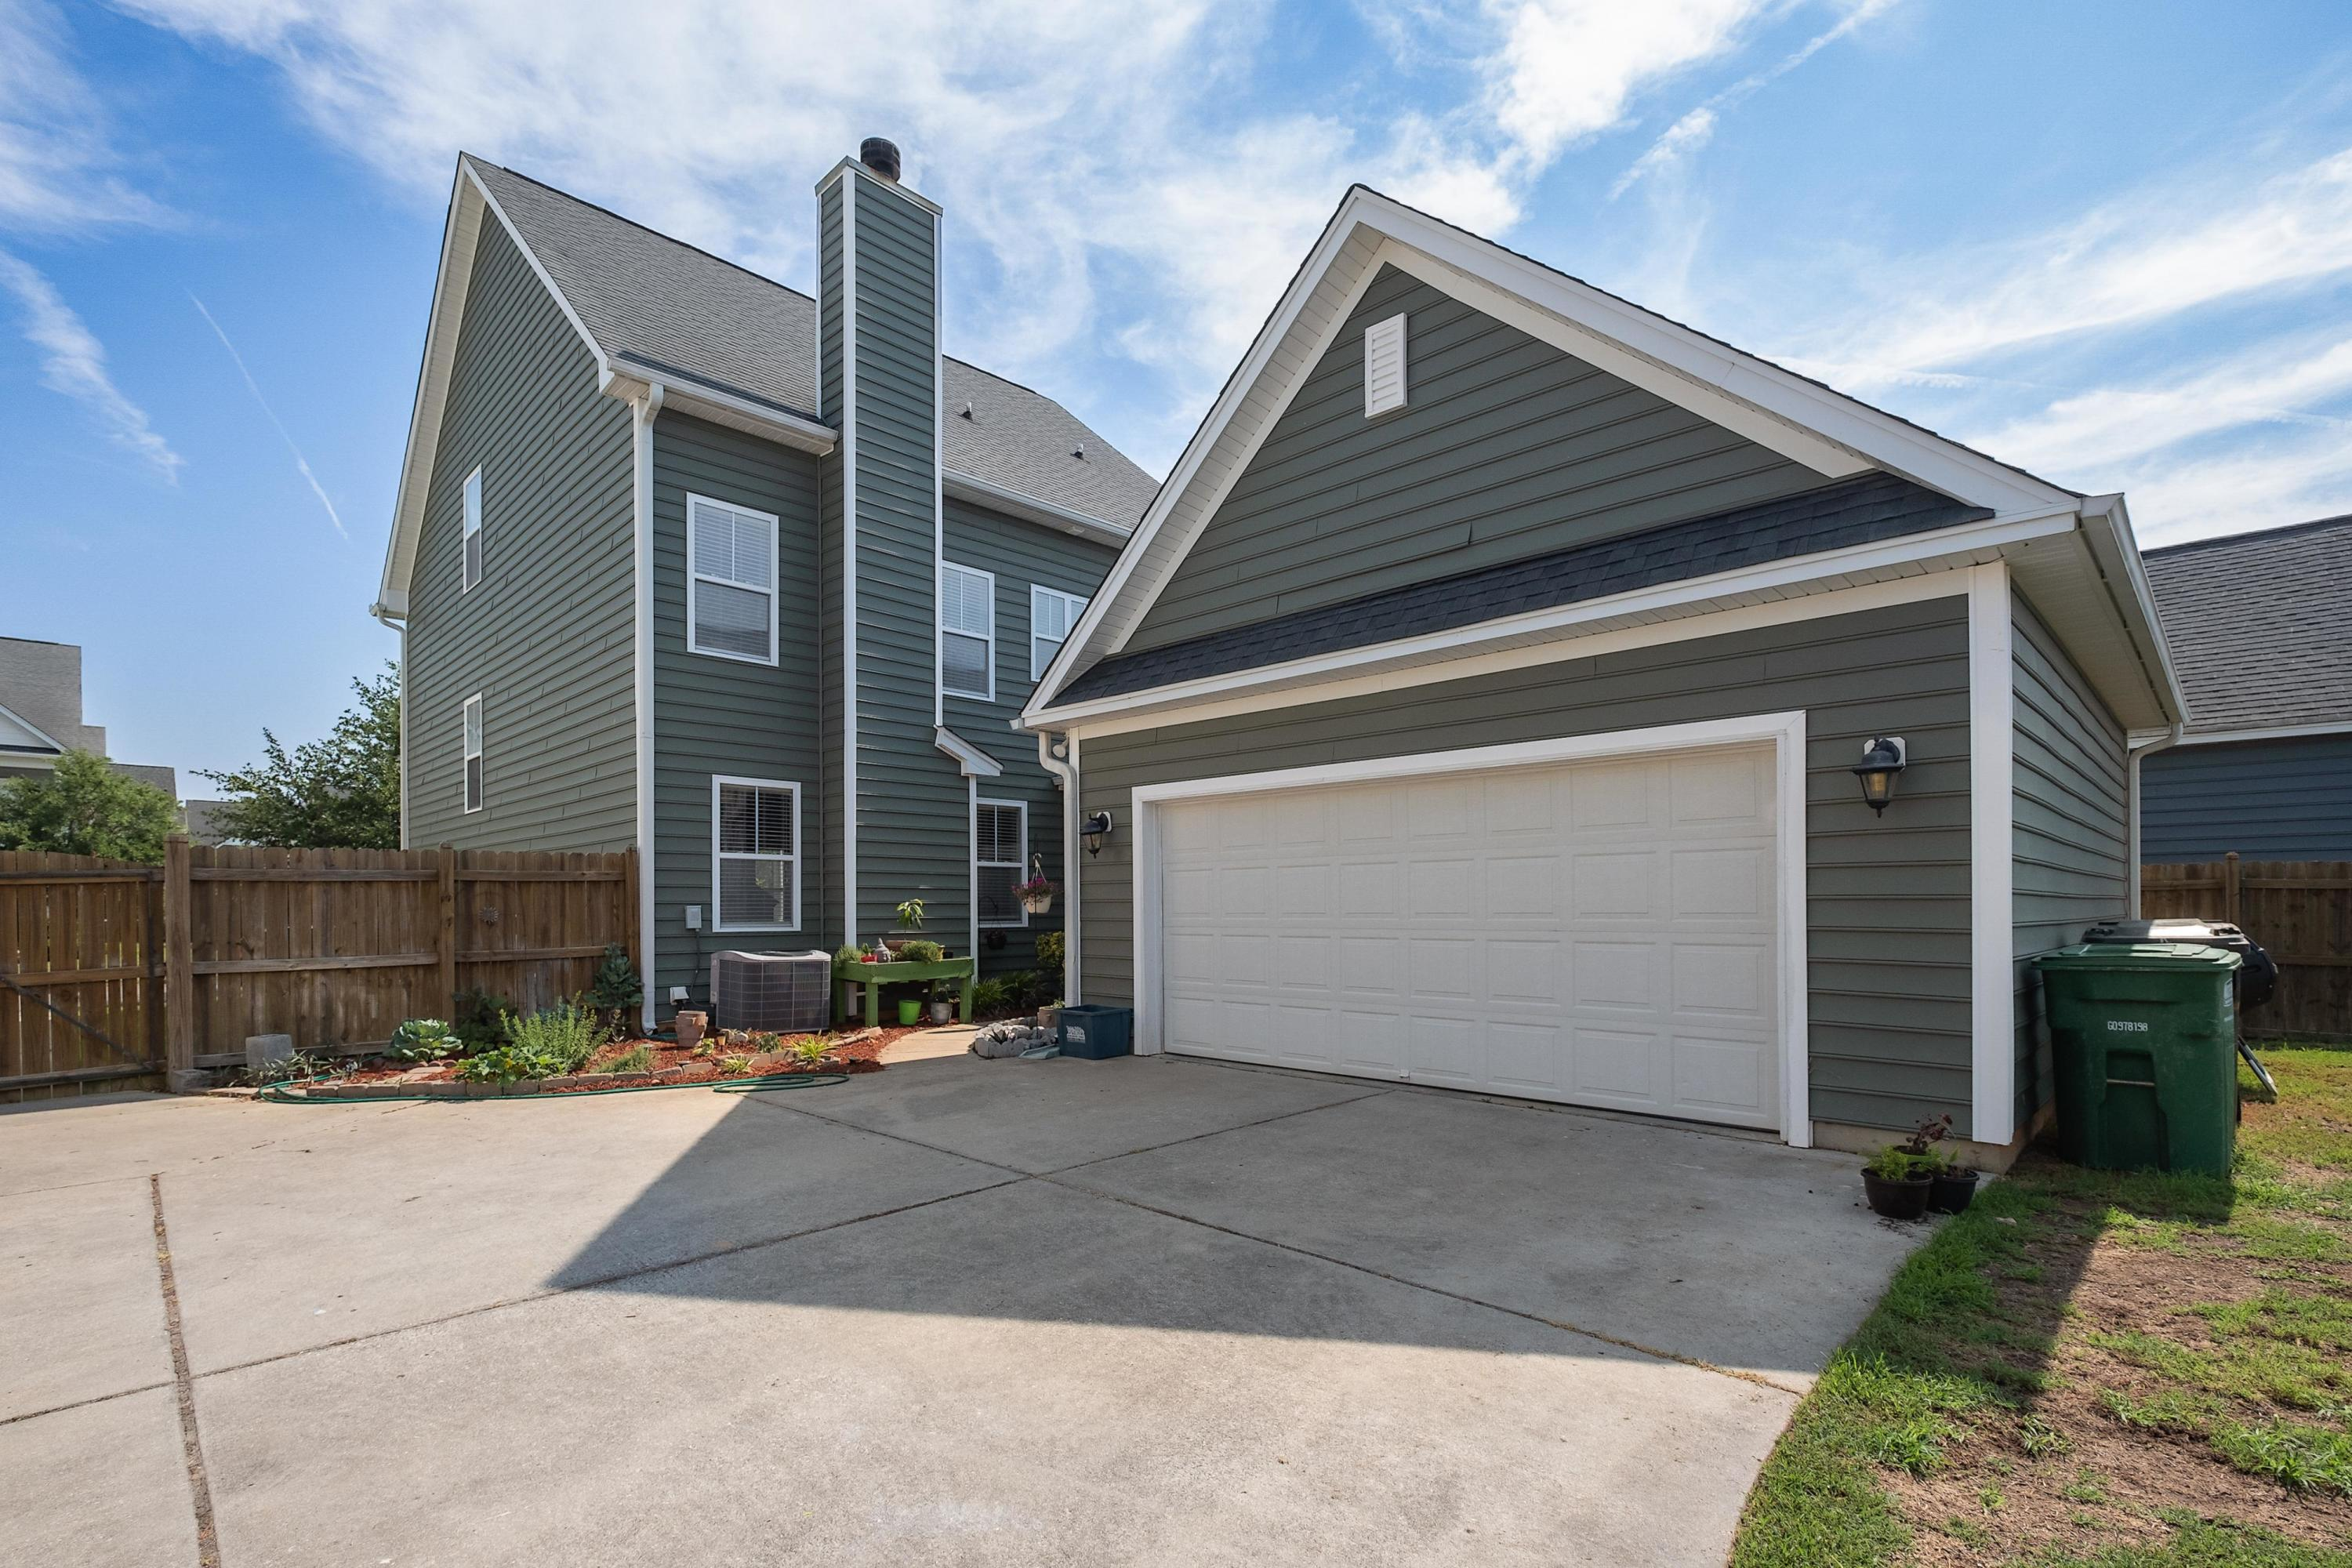 127 Tin Can Alley Summerville, SC 29483